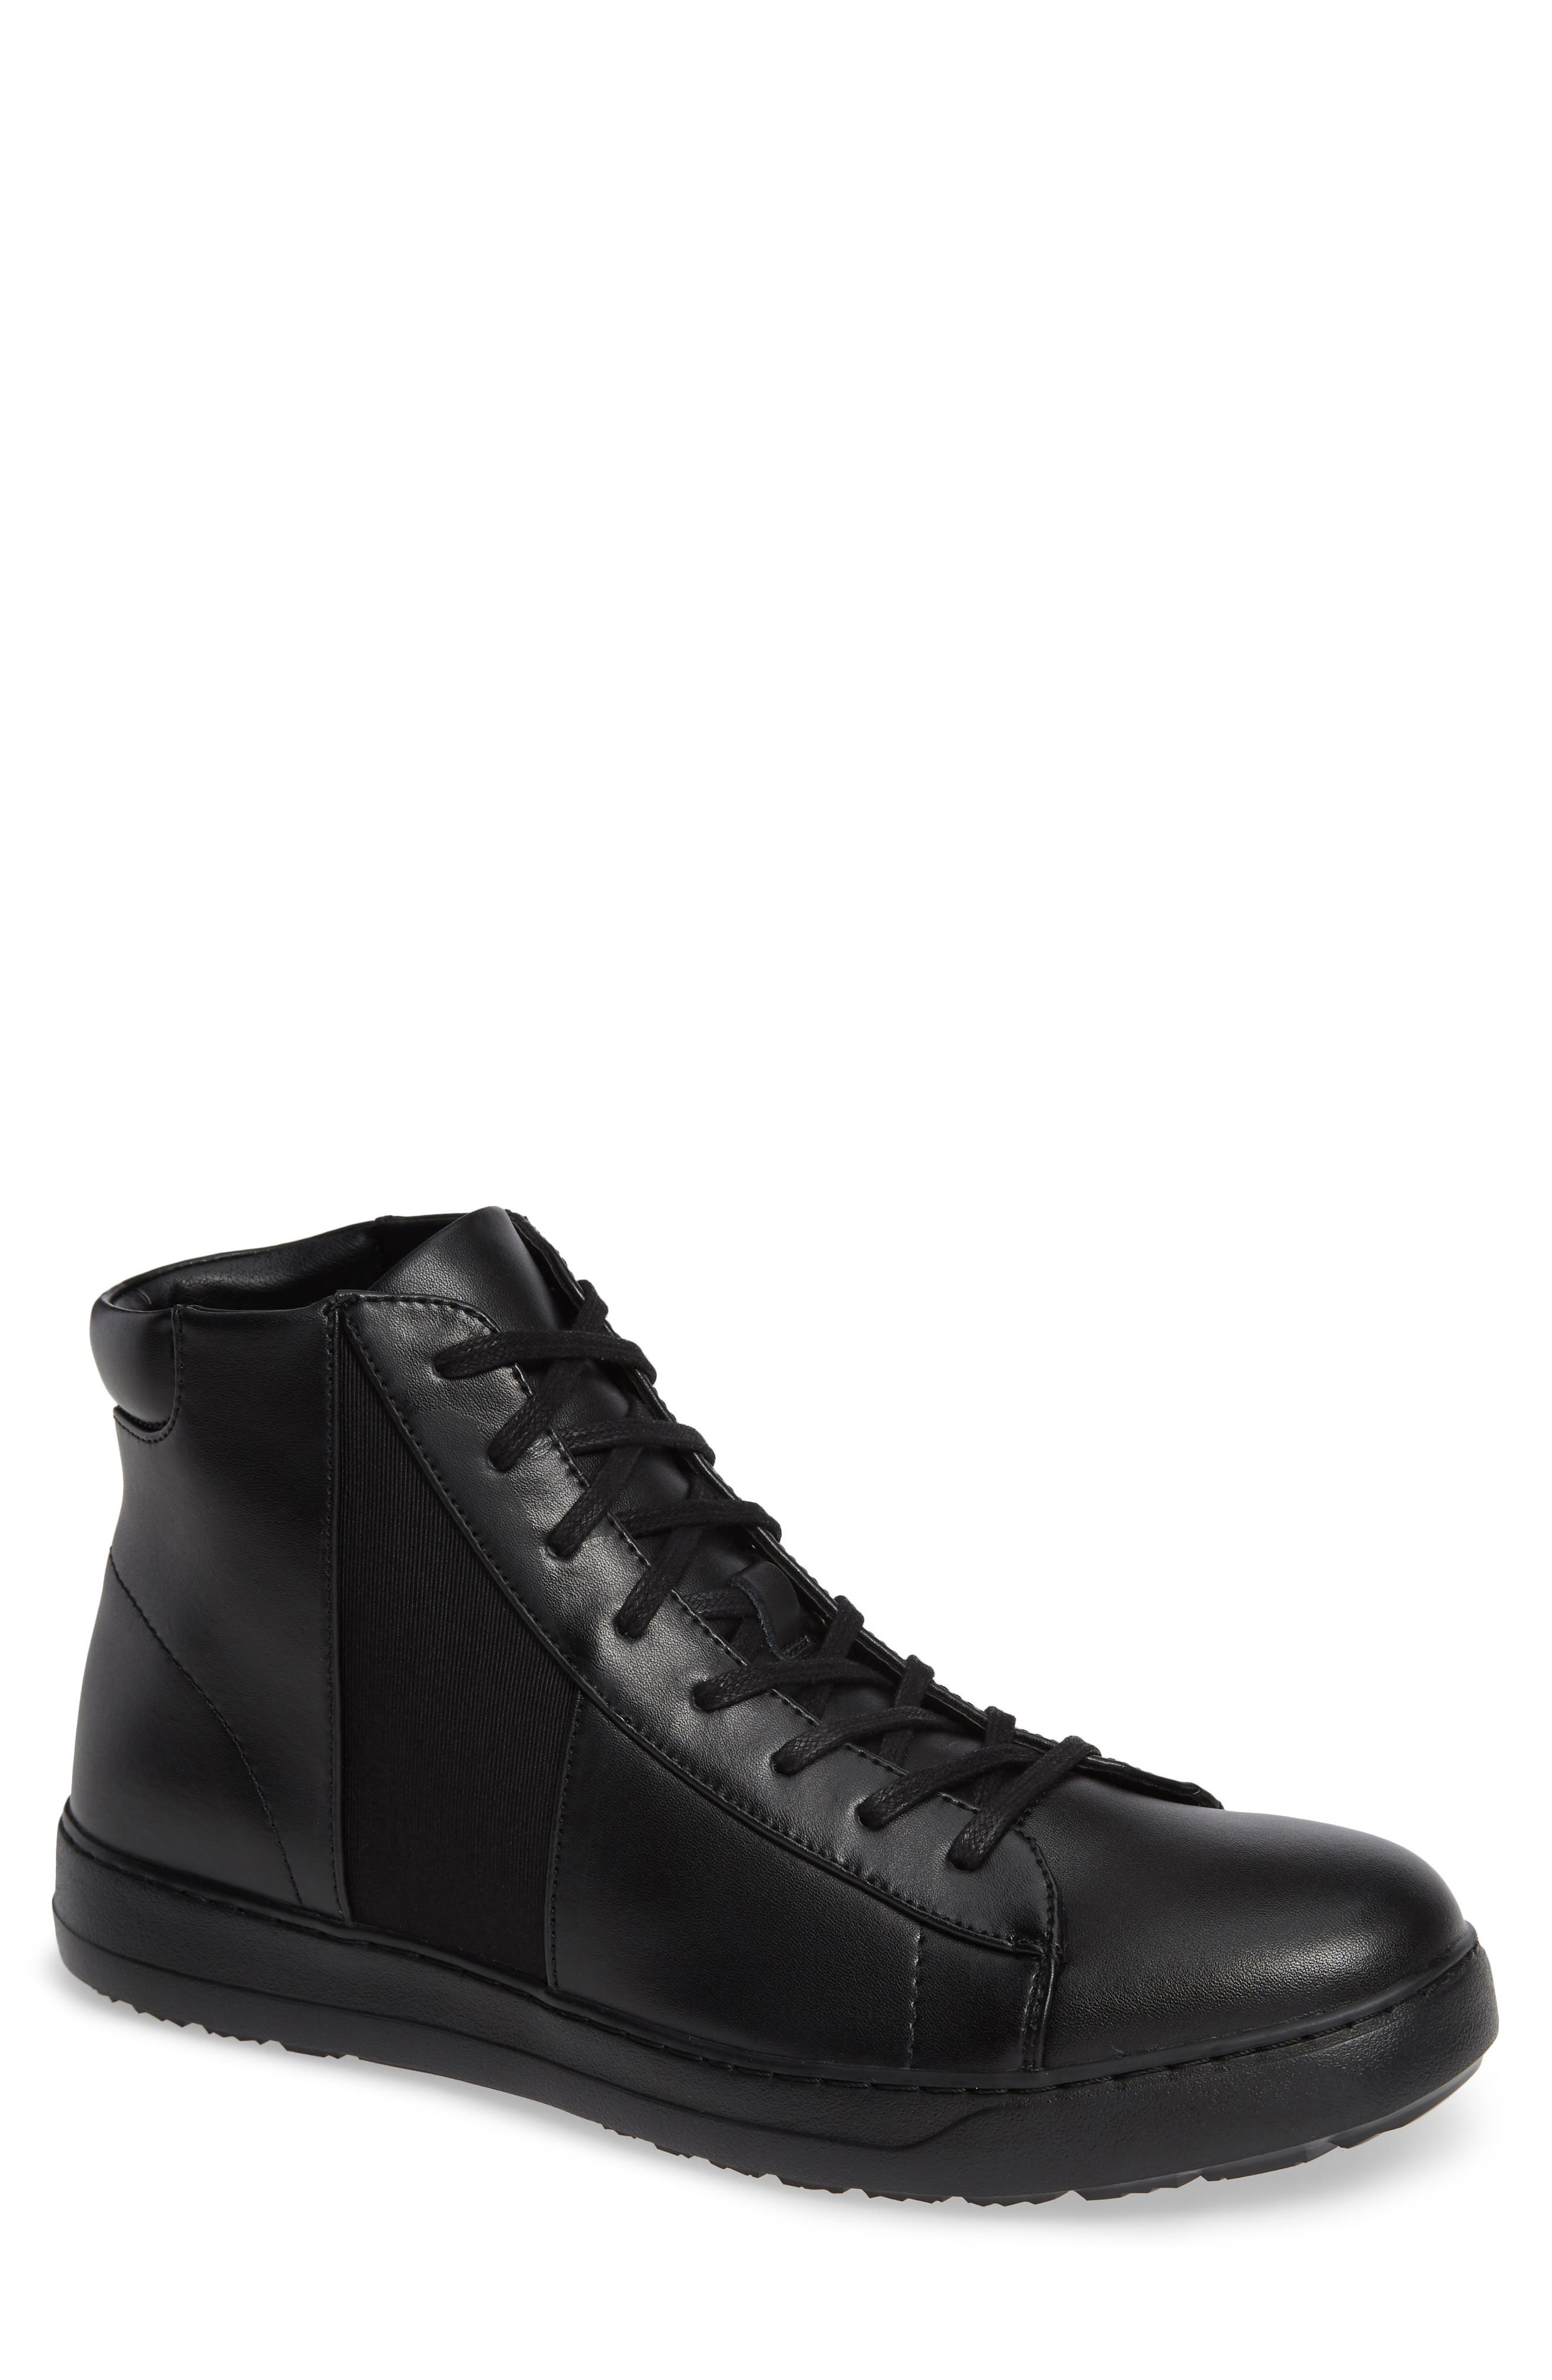 Calvin Klein Salvador High Top Sneaker, Black